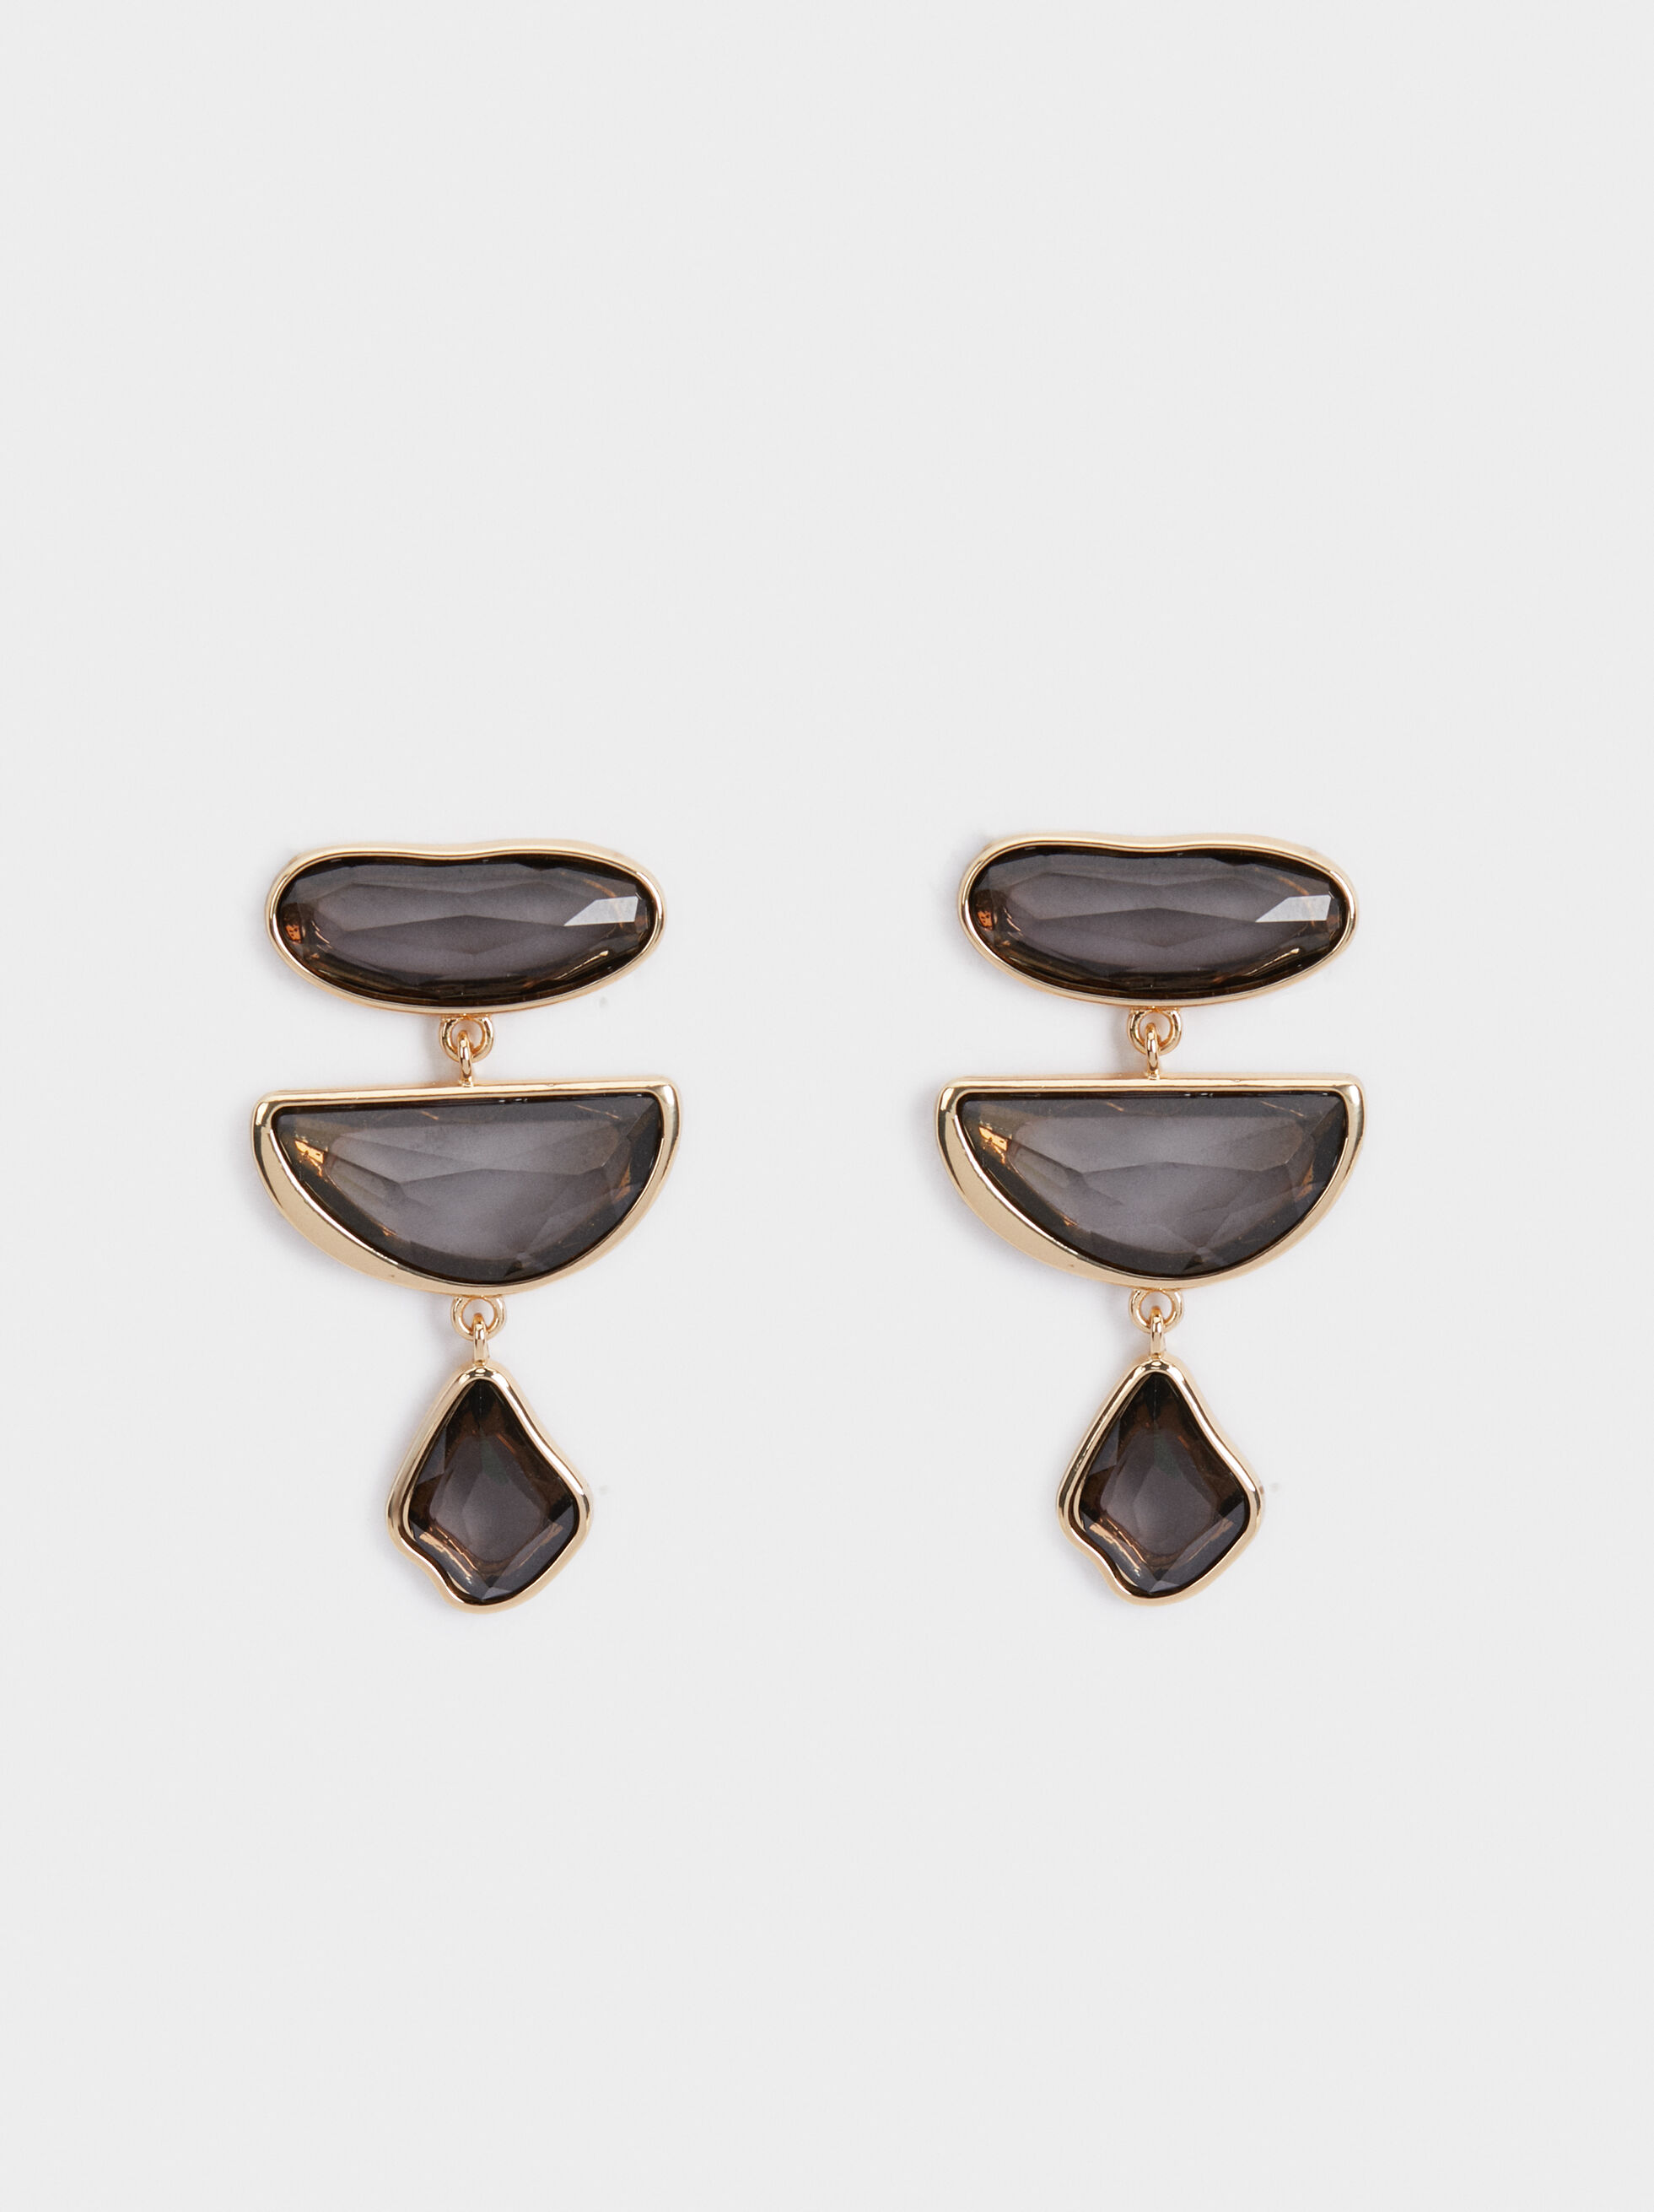 Exclusive Collection Earrings, Brown, hi-res